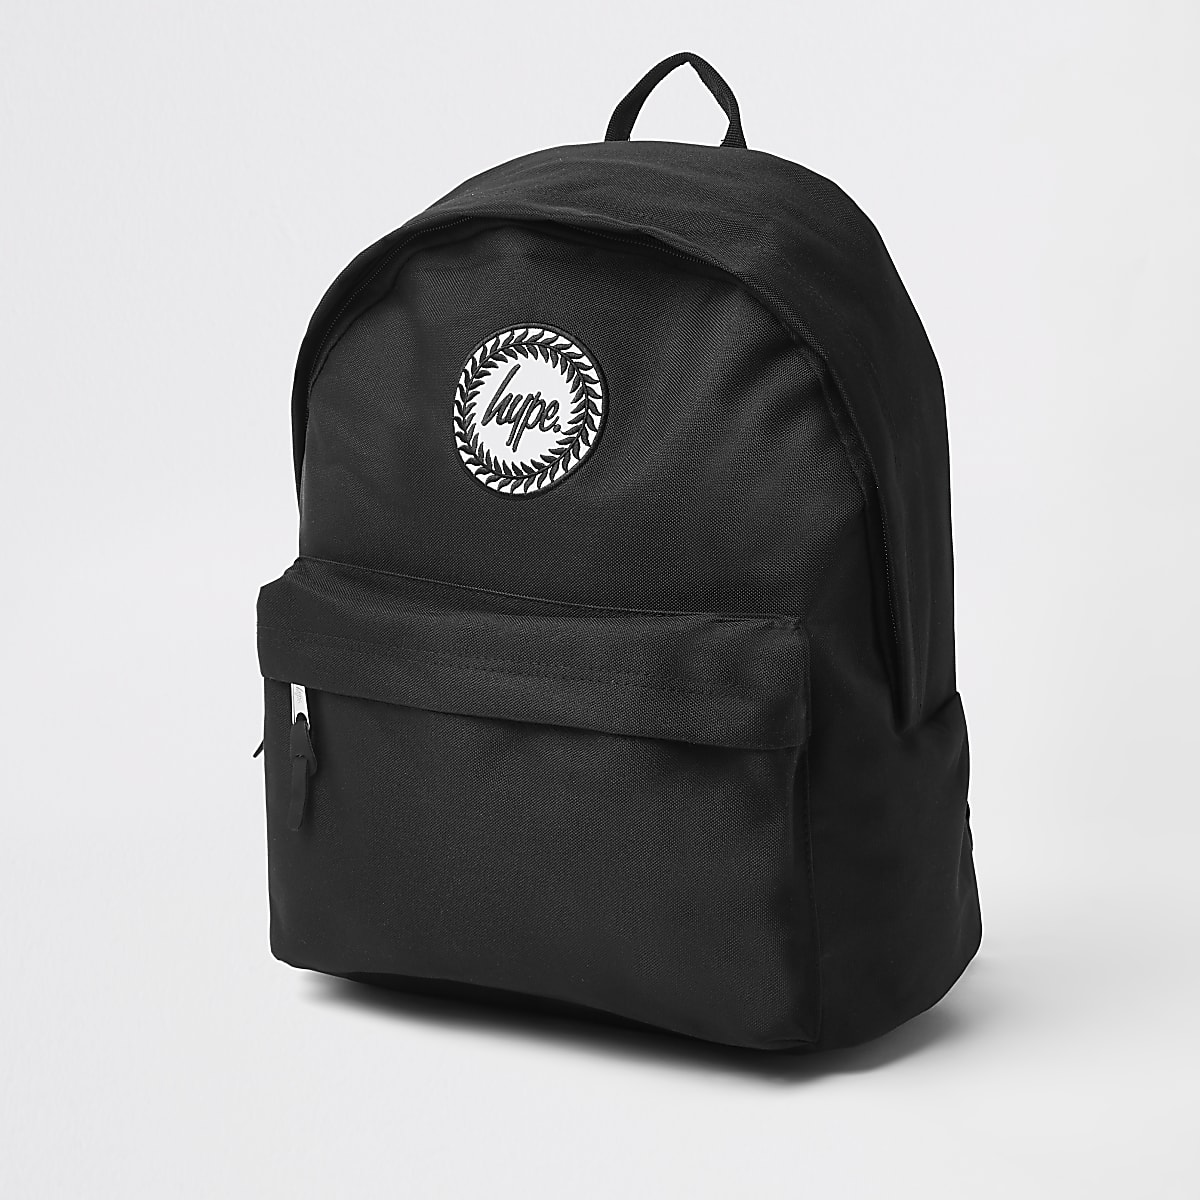 87e6f071f Boys Hype black hologram logo backpack - Bags / Wallets ...